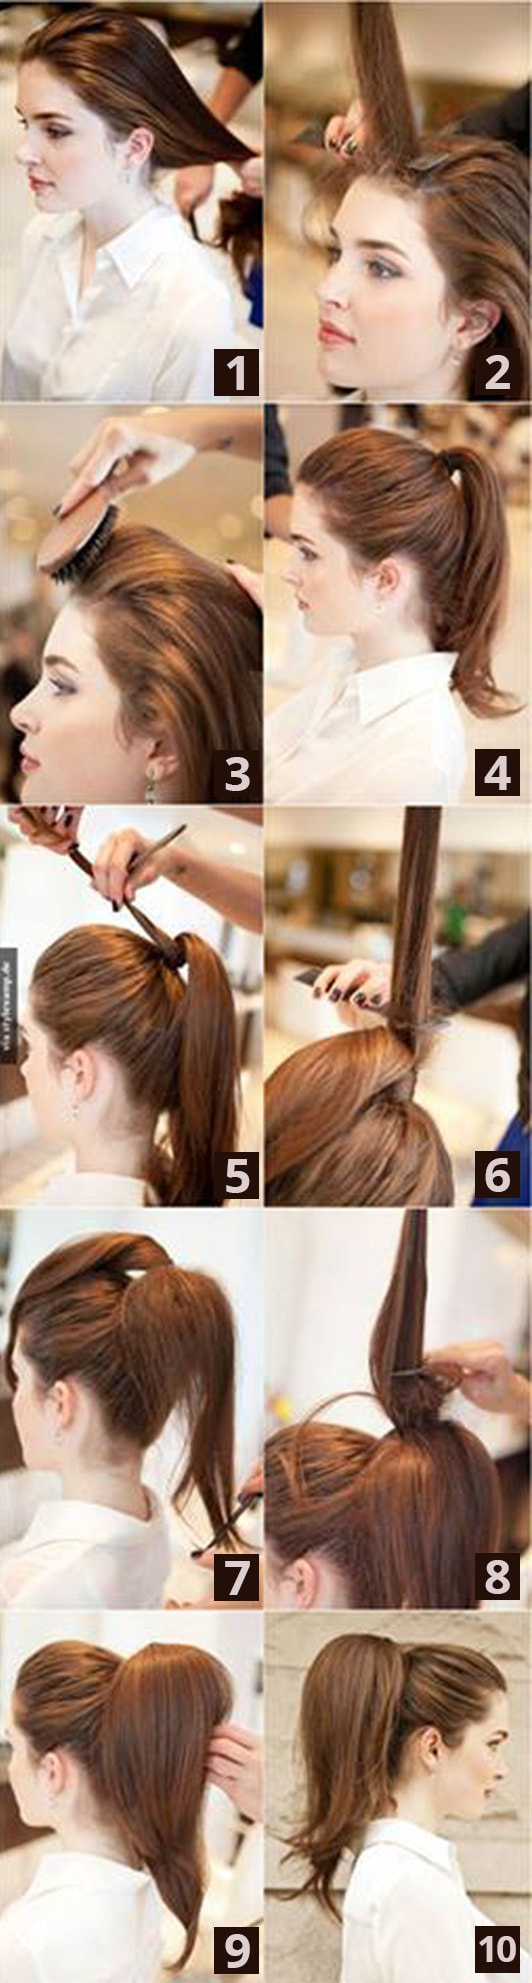 Hair Tutorials for Thin Hair